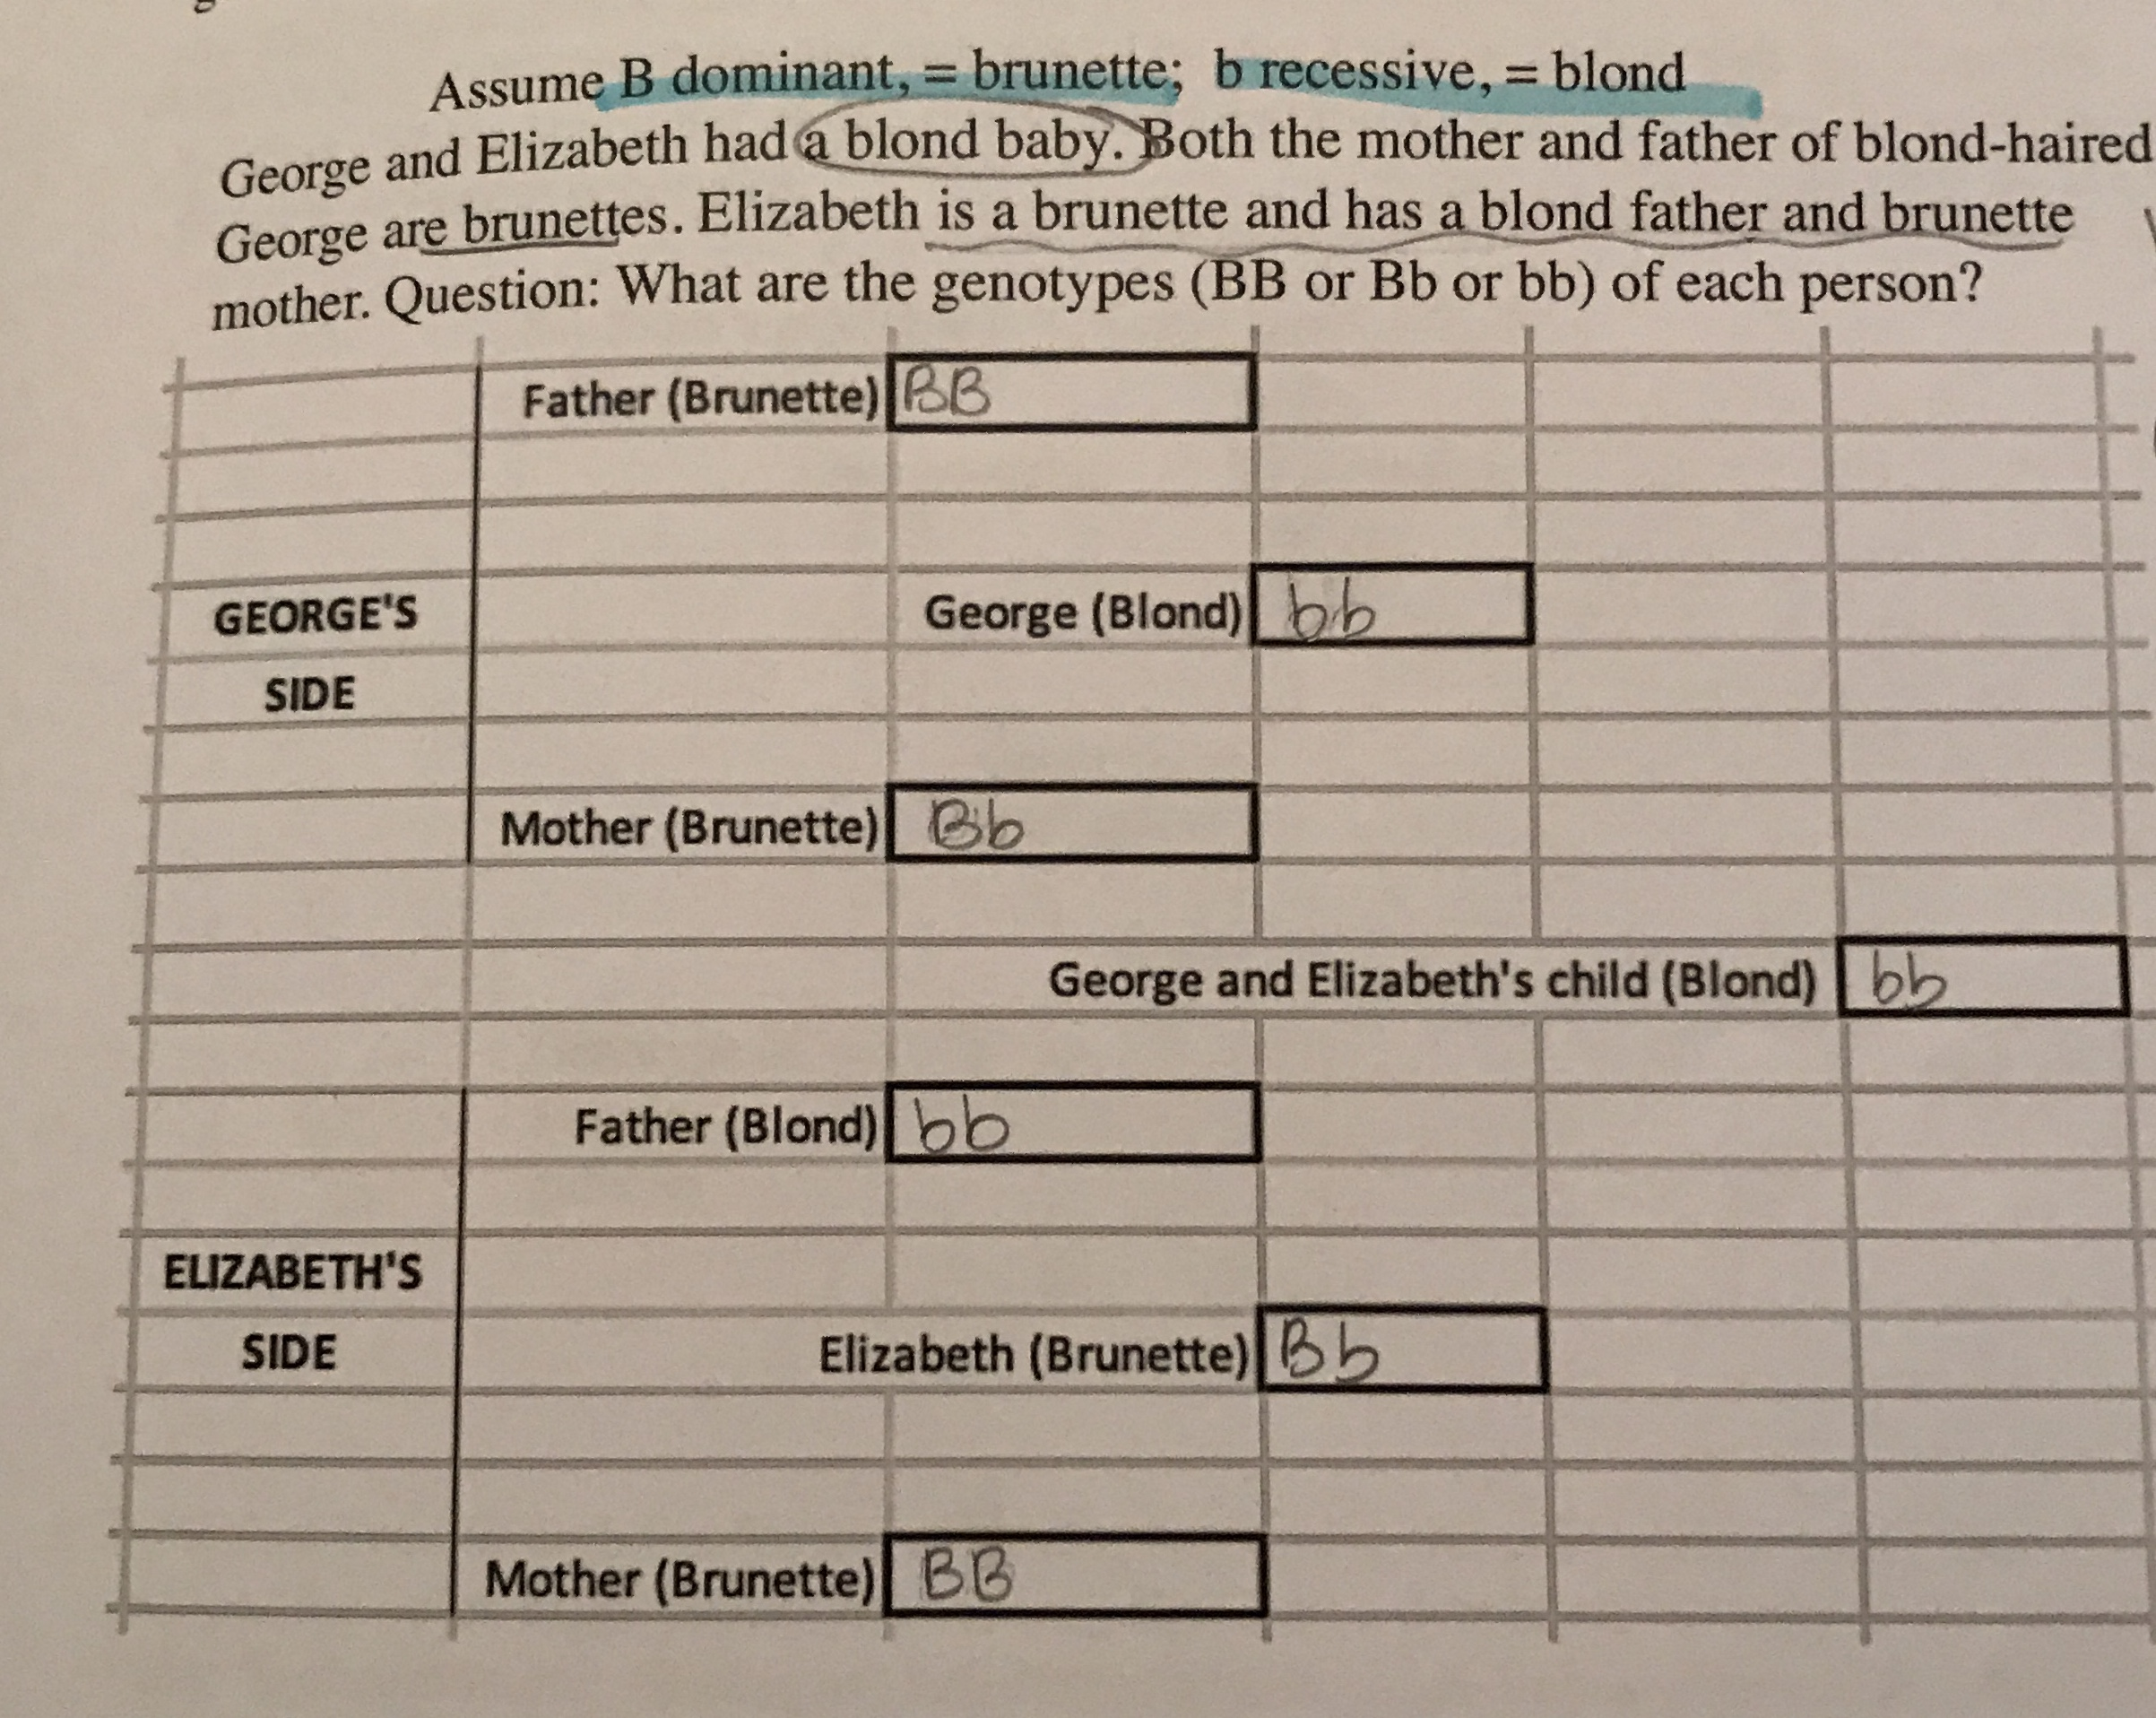 Assume B dominant, = brunette; b recessive, blond George and Elizabeth had a blond baby. Both the mother and father of blond-haired George are brunettes. Elizabeth is a brunette and has a blond father and brunette mother. Question: What are the genotypes (BB or Bb or bb) of each person? Father (Brunette) BB George (Blond)bb GEORGE'S SIDE Mother (Brunette)Bb George and Elizabeth's child (Blond)bb Father (Blond)bb ELIZABETH'S Elizabeth (Brunette)b SIDE Ве Mother (Brunette) BB